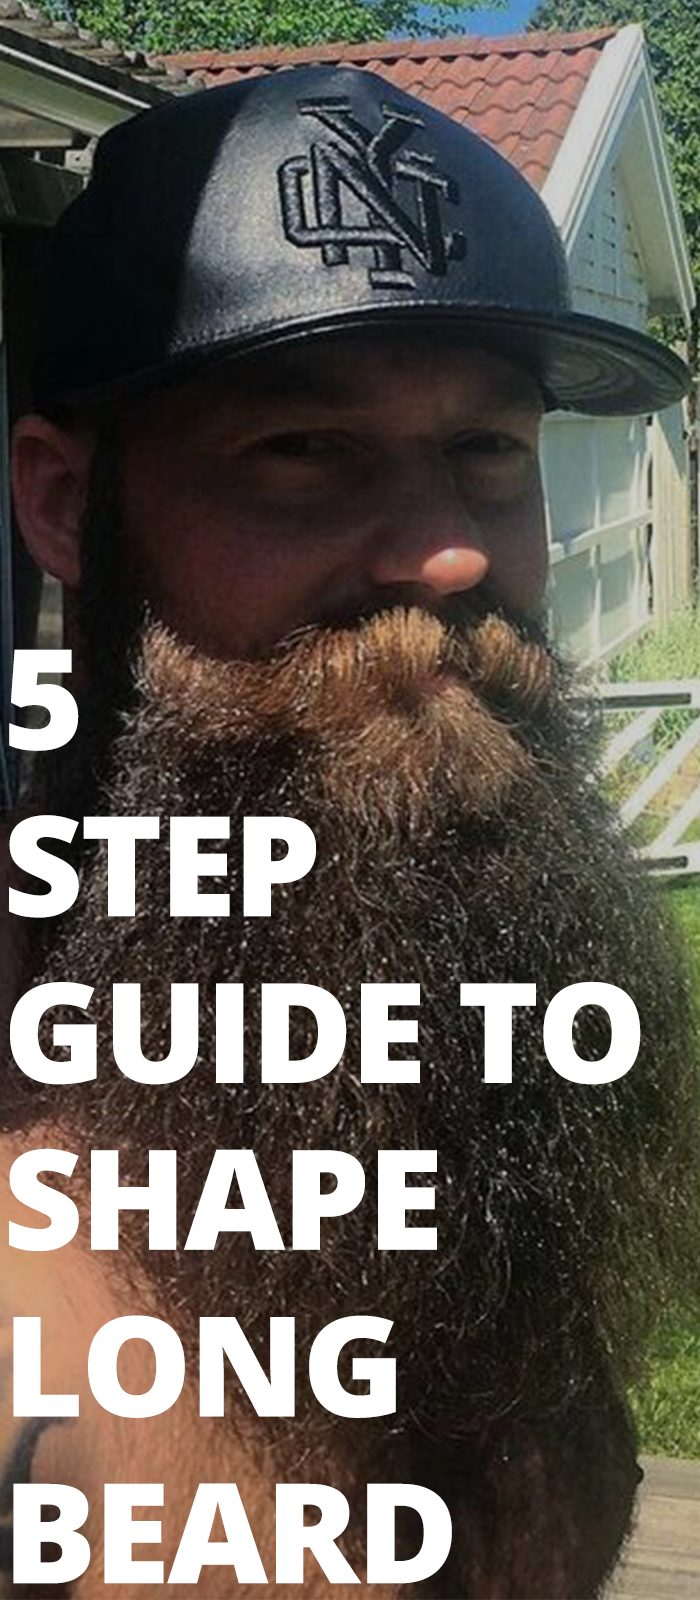 5 Step Guide To Shape Long Beard